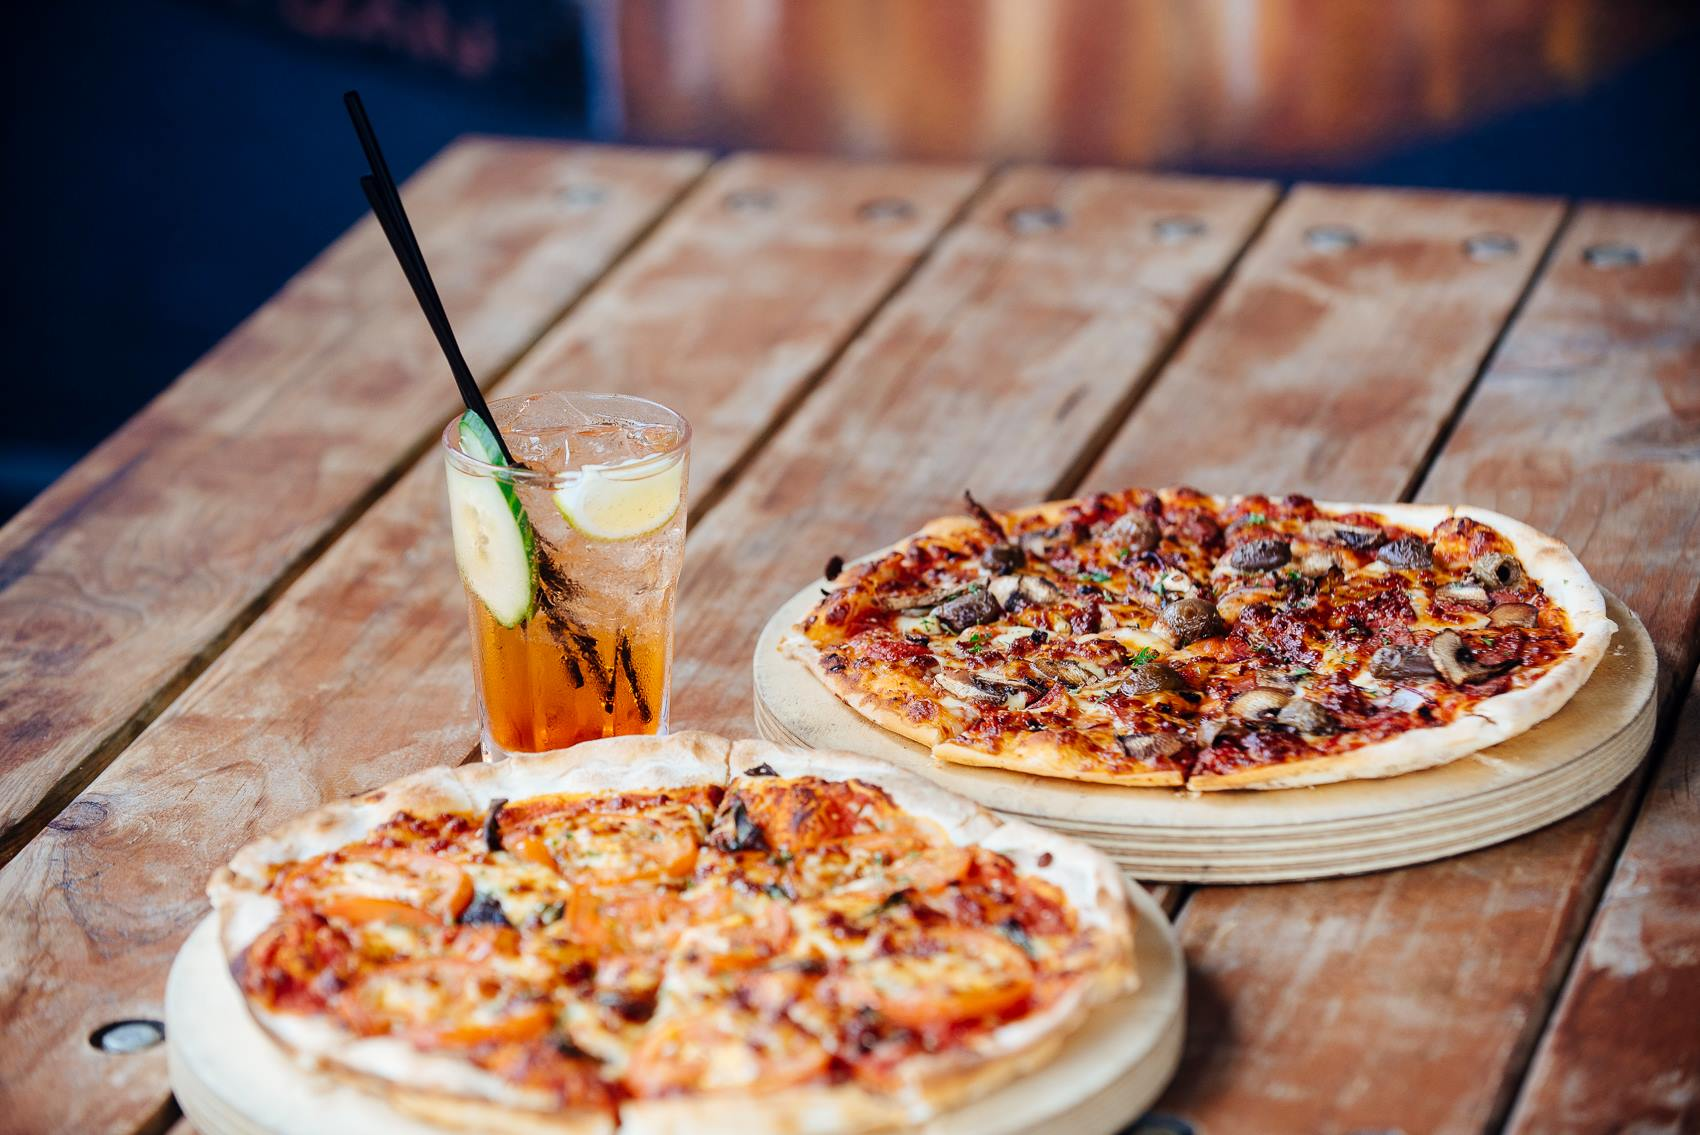 $5 Pizza Sundays - from 3:30 pm